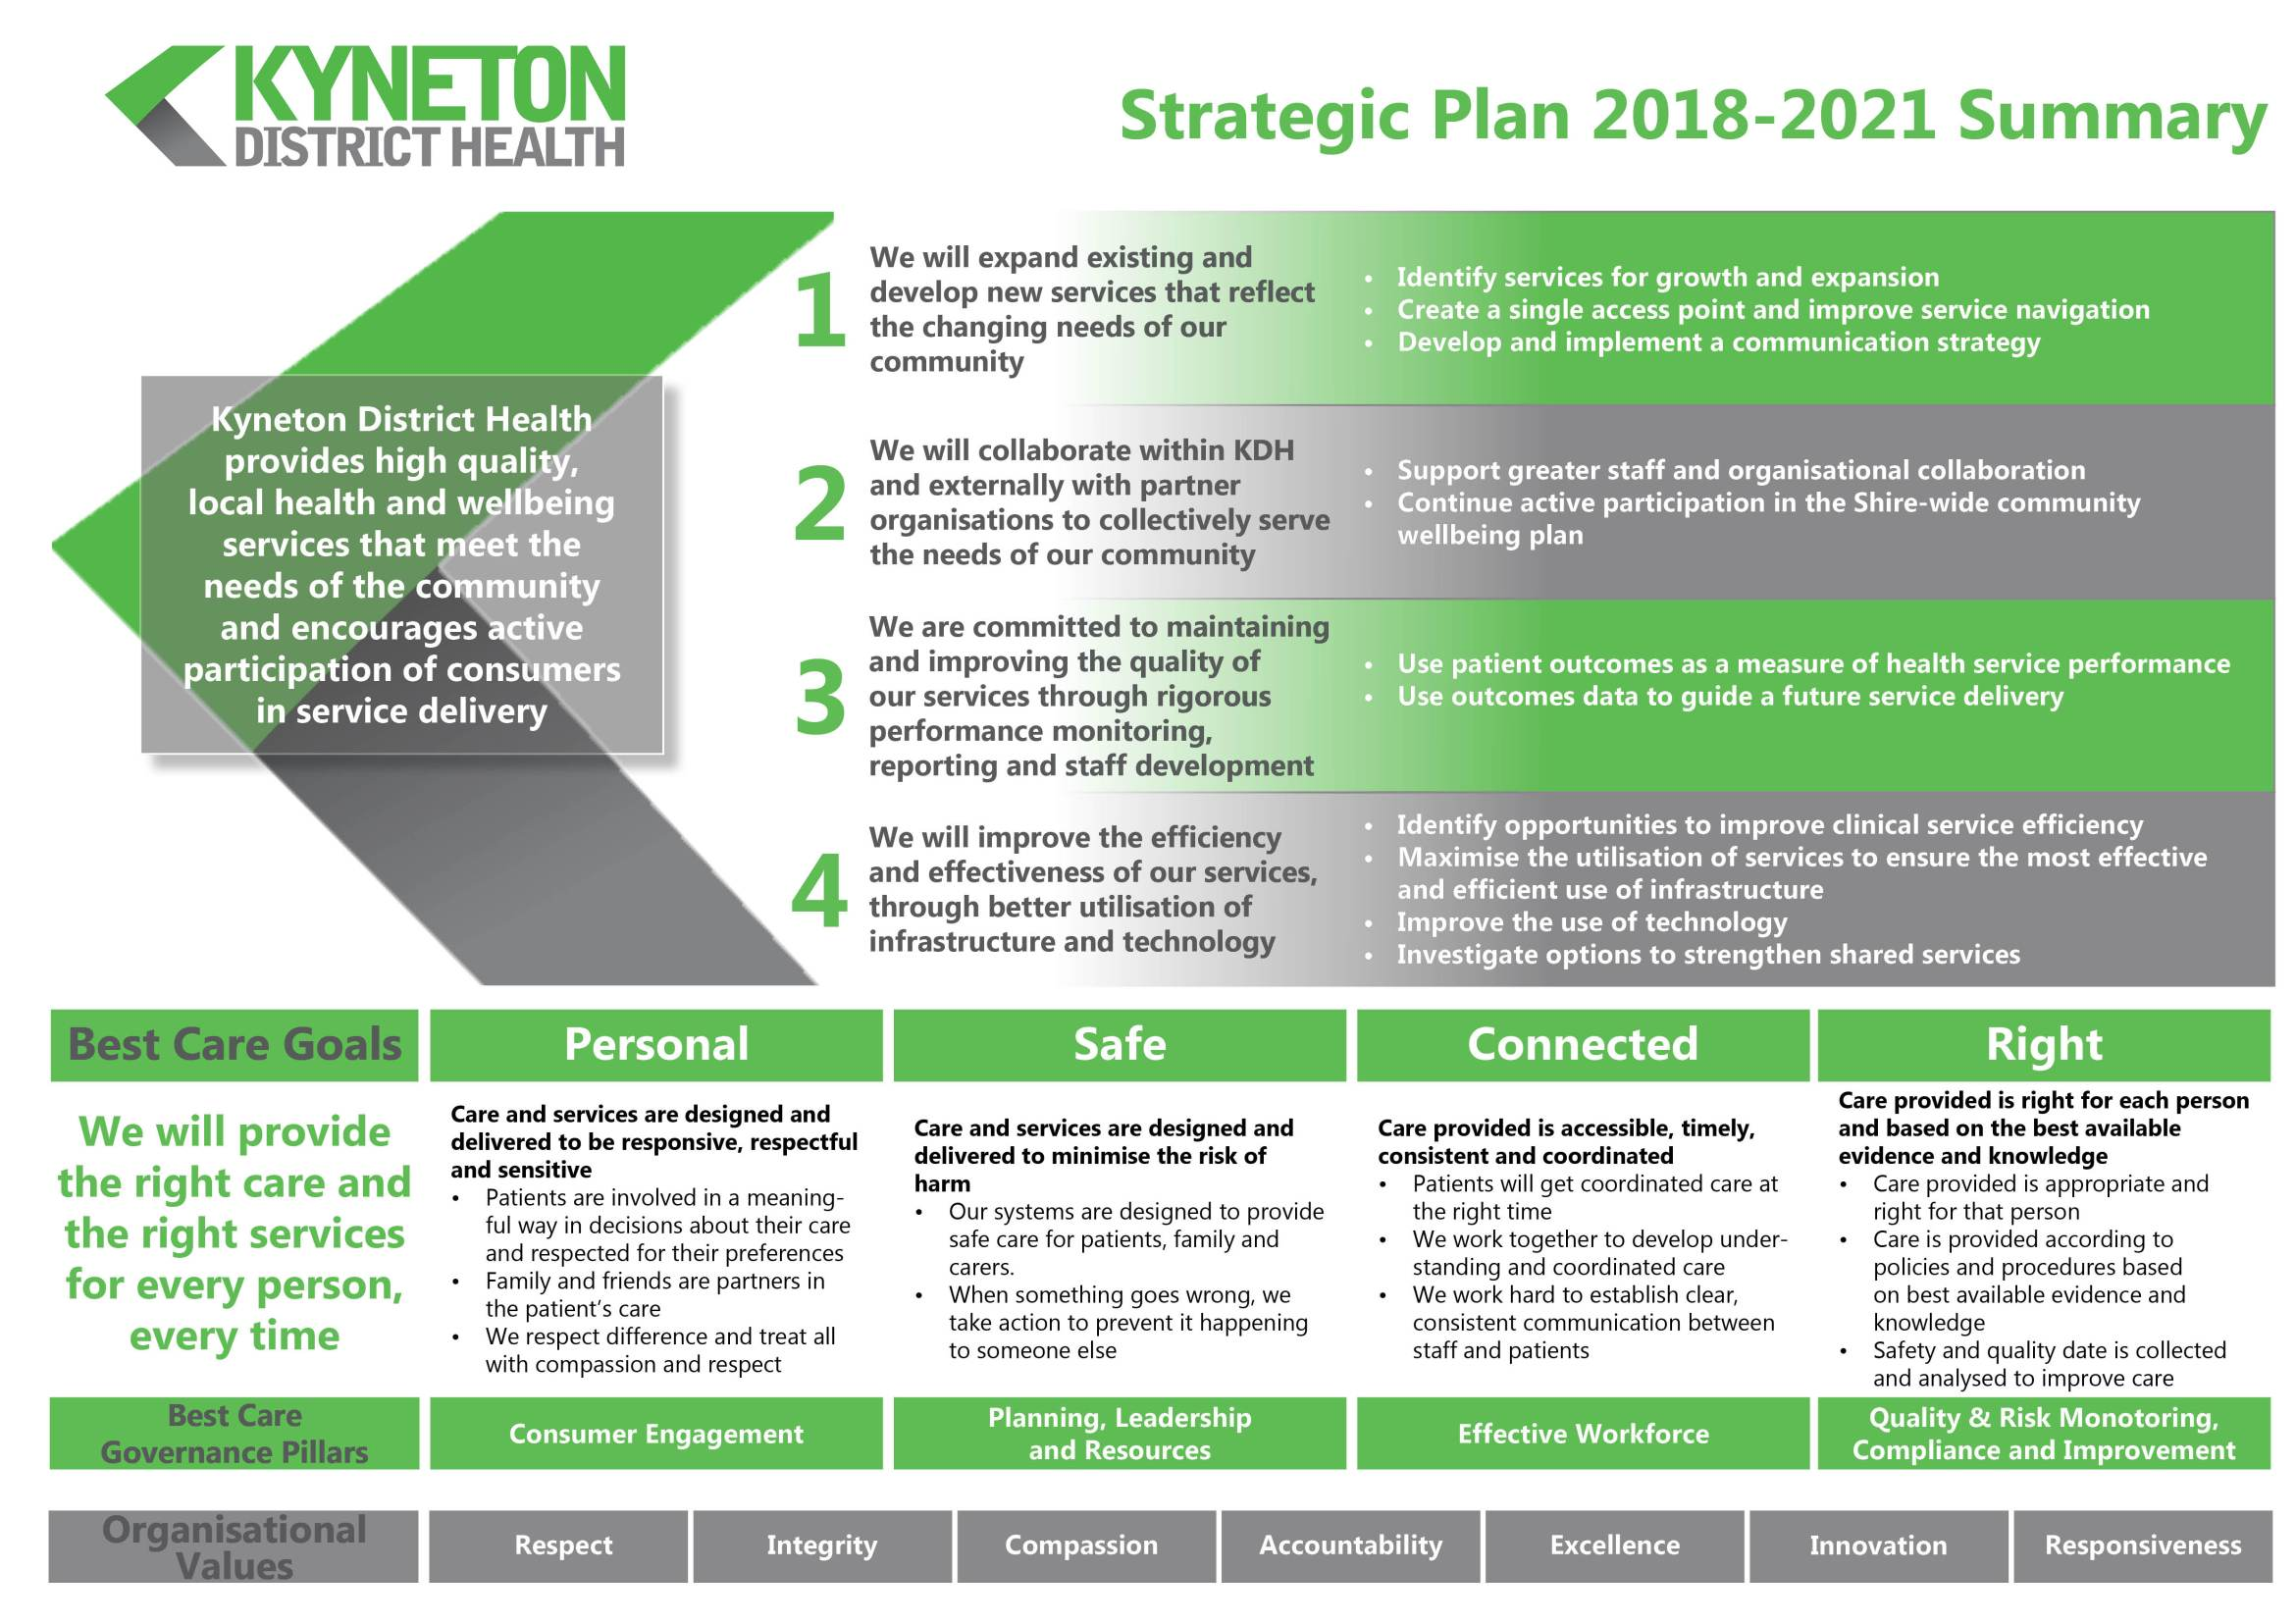 KDH Strategic Plan Summary